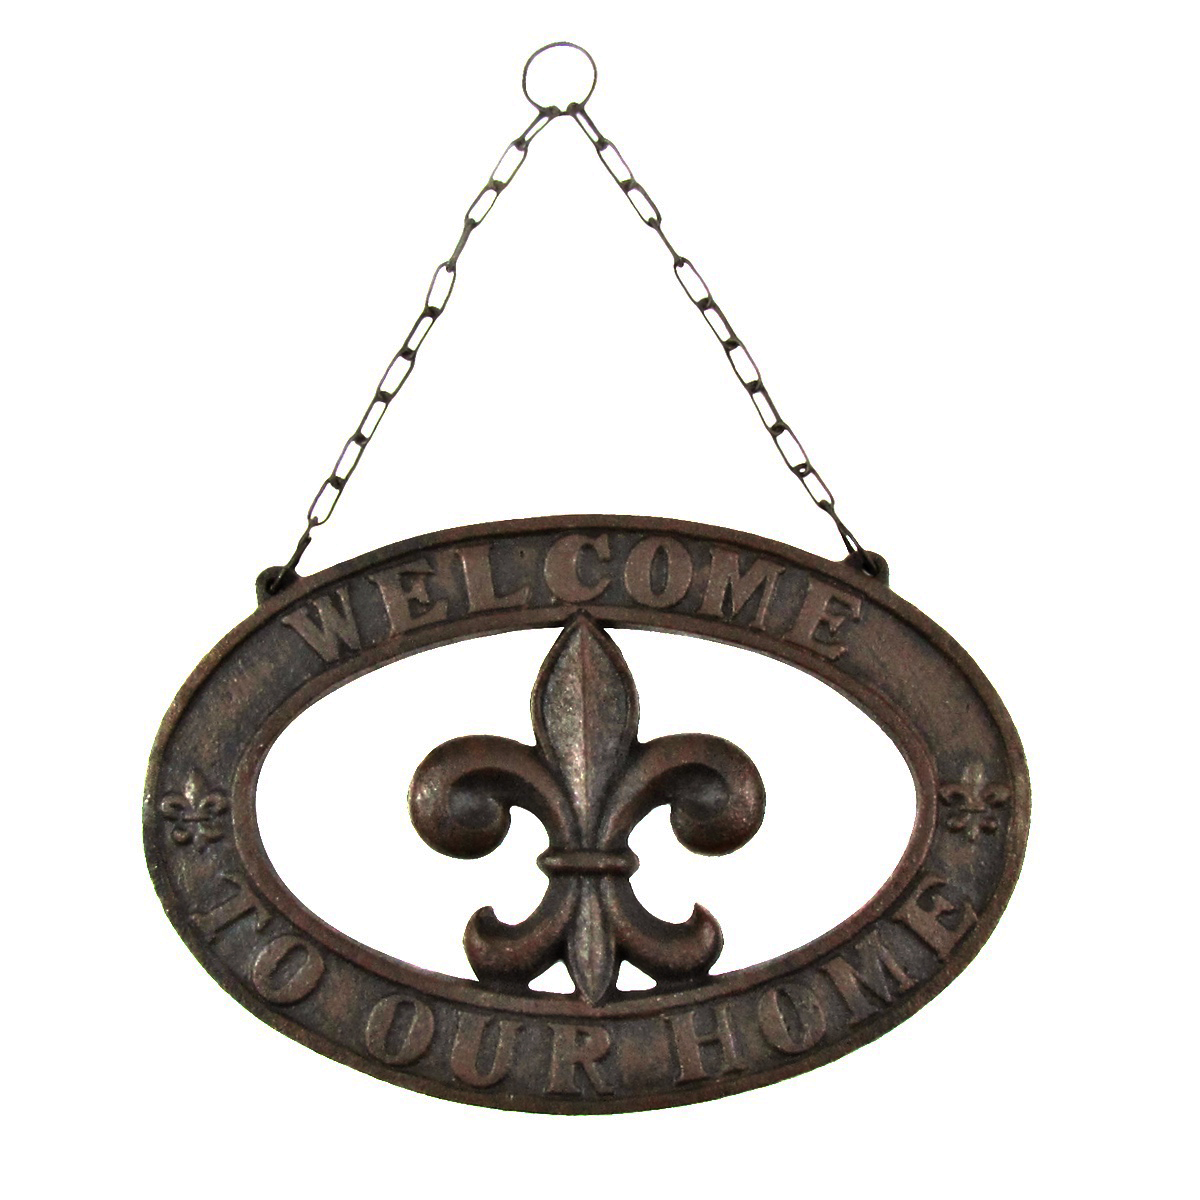 Cast Iron French Fleur De Lis Welcome Sign Rustic Home/Wall/Front Door Decor